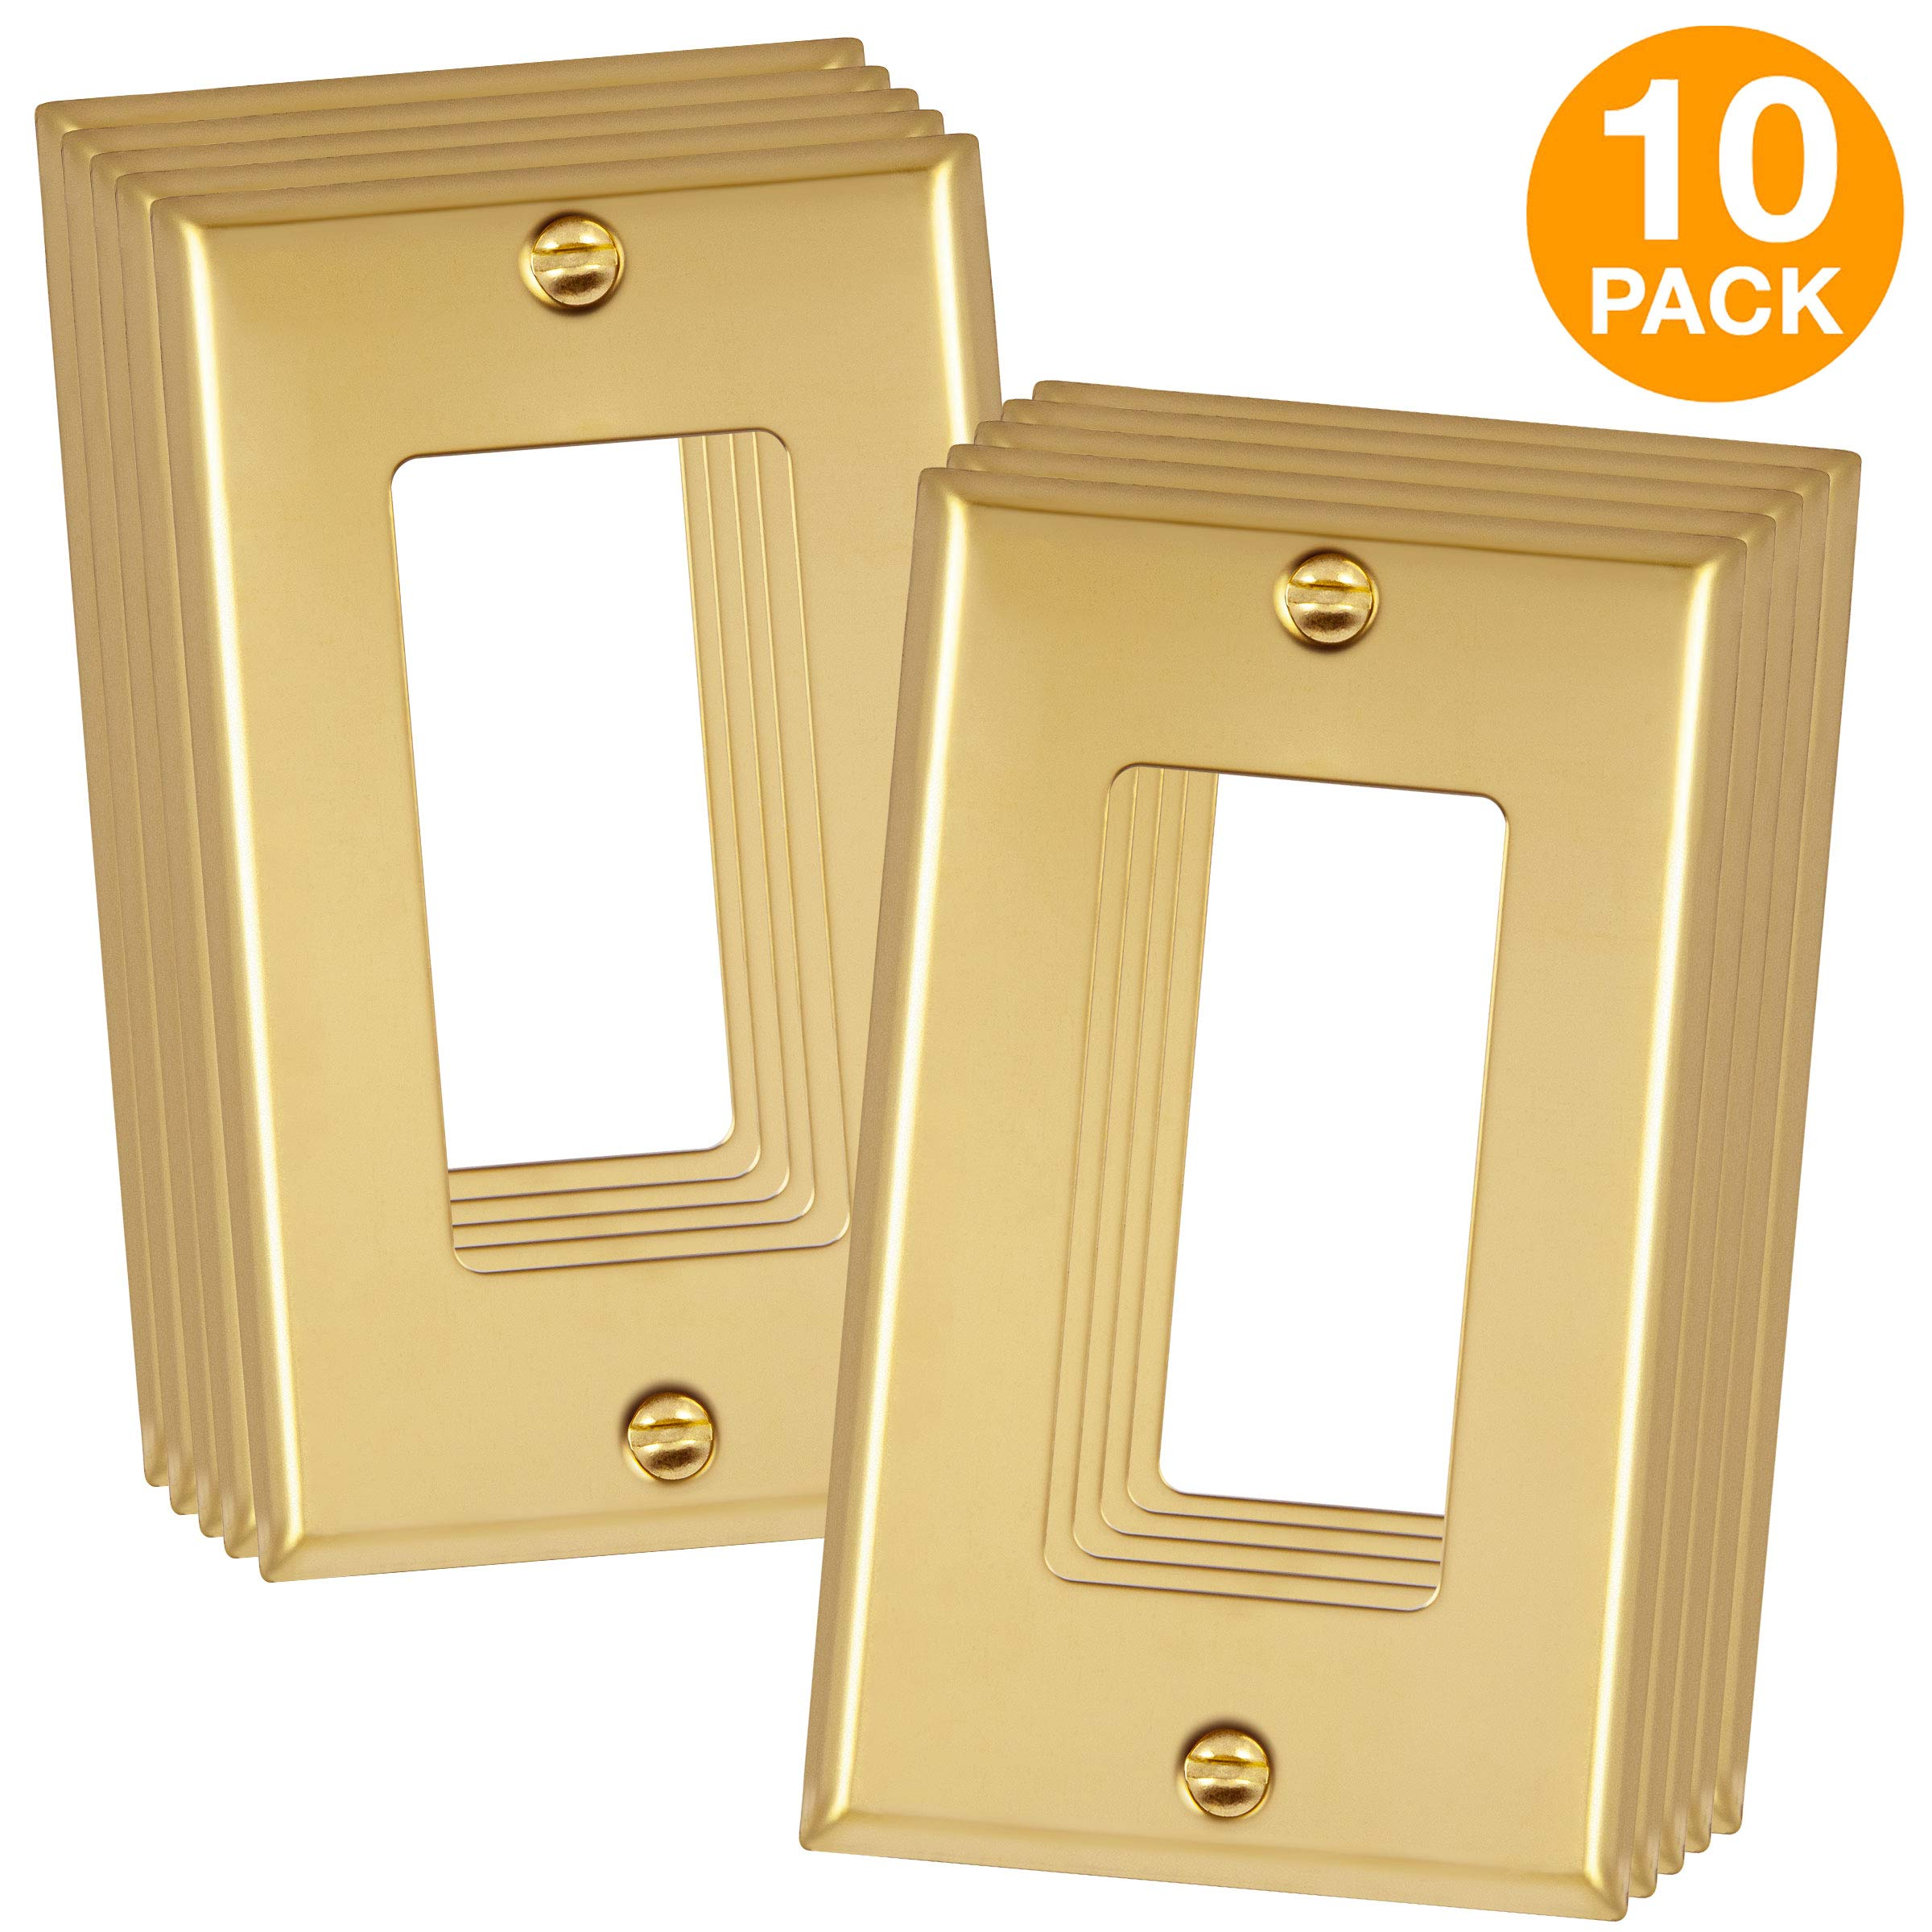 ENERLITES Metal Decorator Switch/Outlet Wall Plate, Corrosive Resistant, Size 1-Gang 4.50'' x 2.76'', 7731-PB-10PCS, 302 Polished Brass (10 Pack)